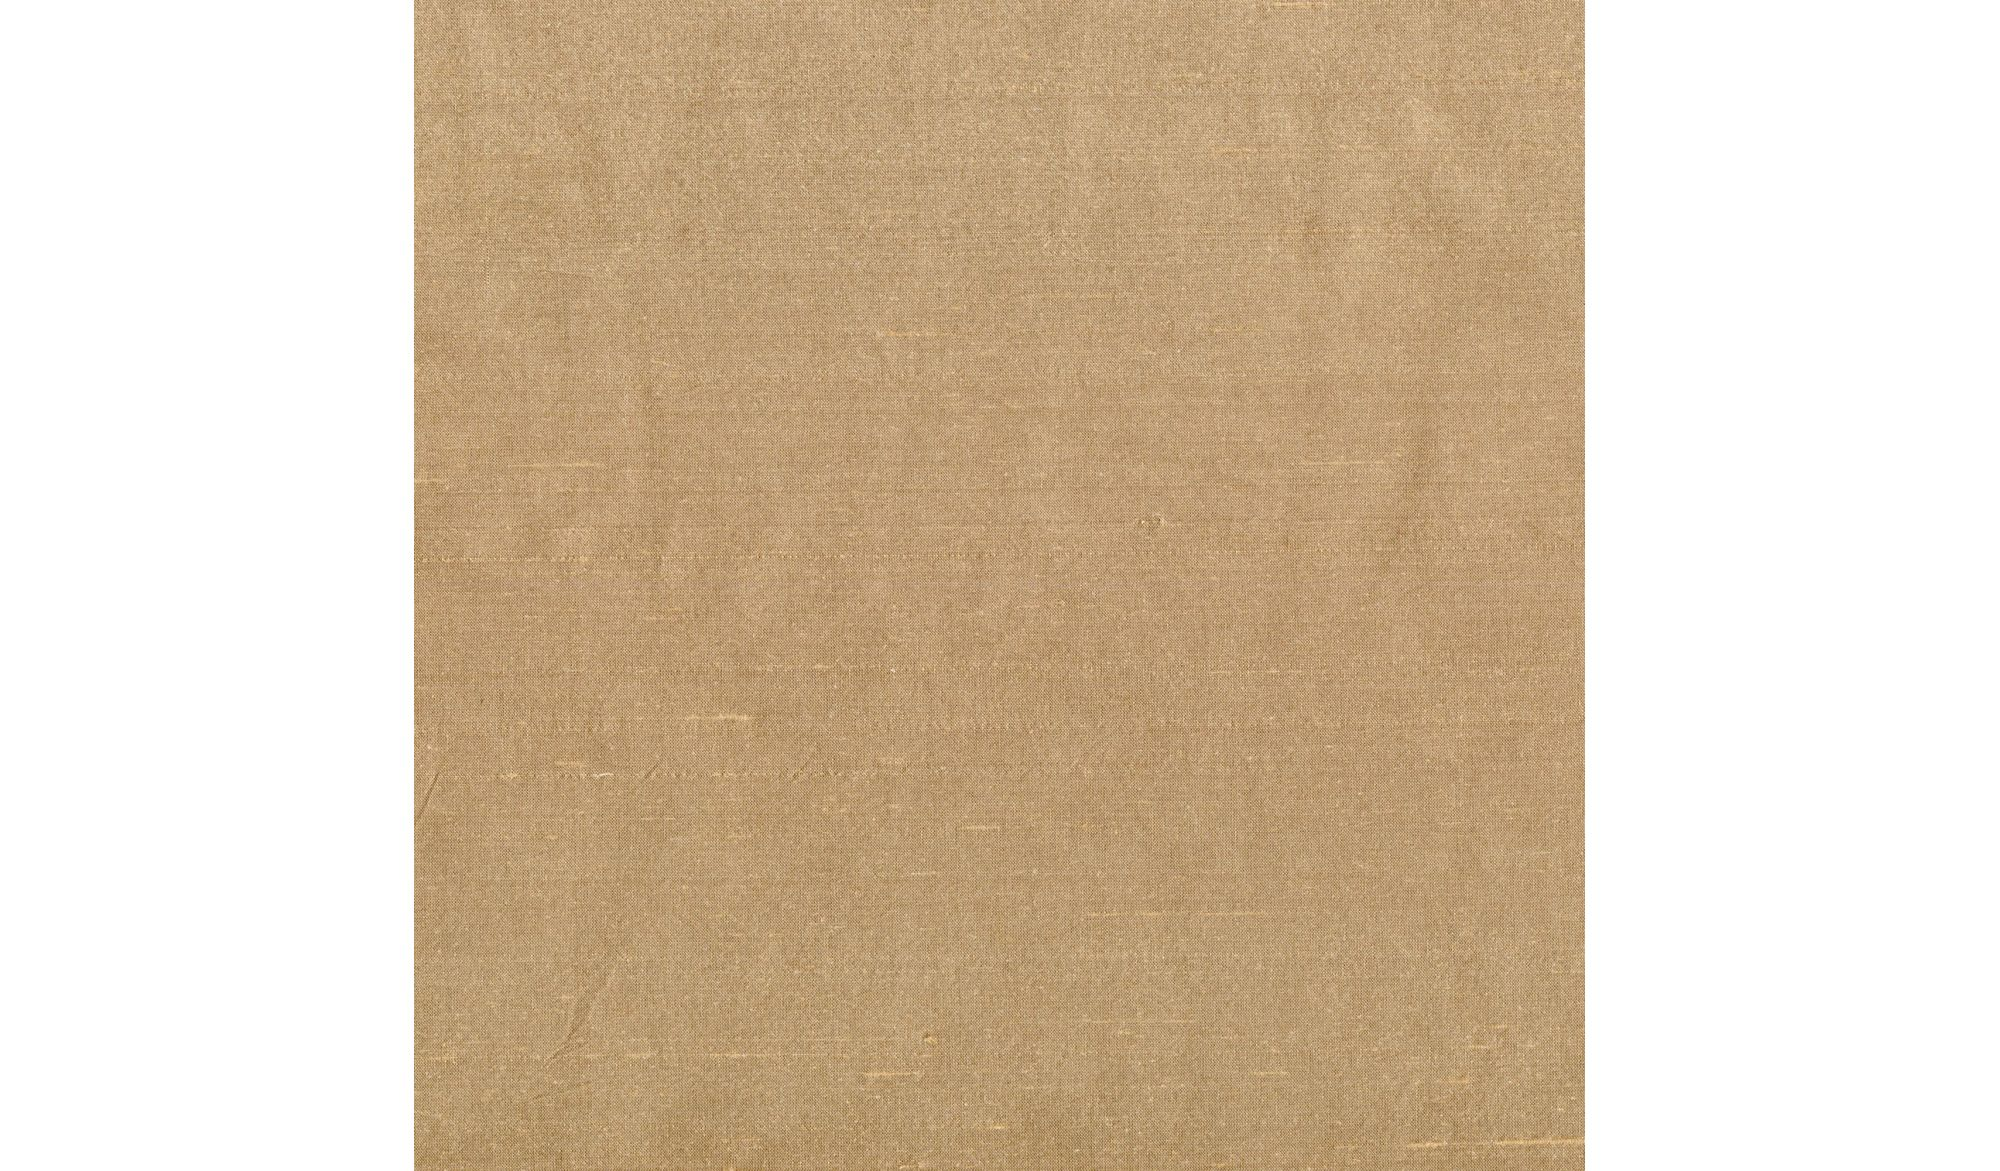 YAMIR Cappuccino 1526 - Fabric alt_tkaniny_kolor_cappuccino 1526 decorative Plain - Colour